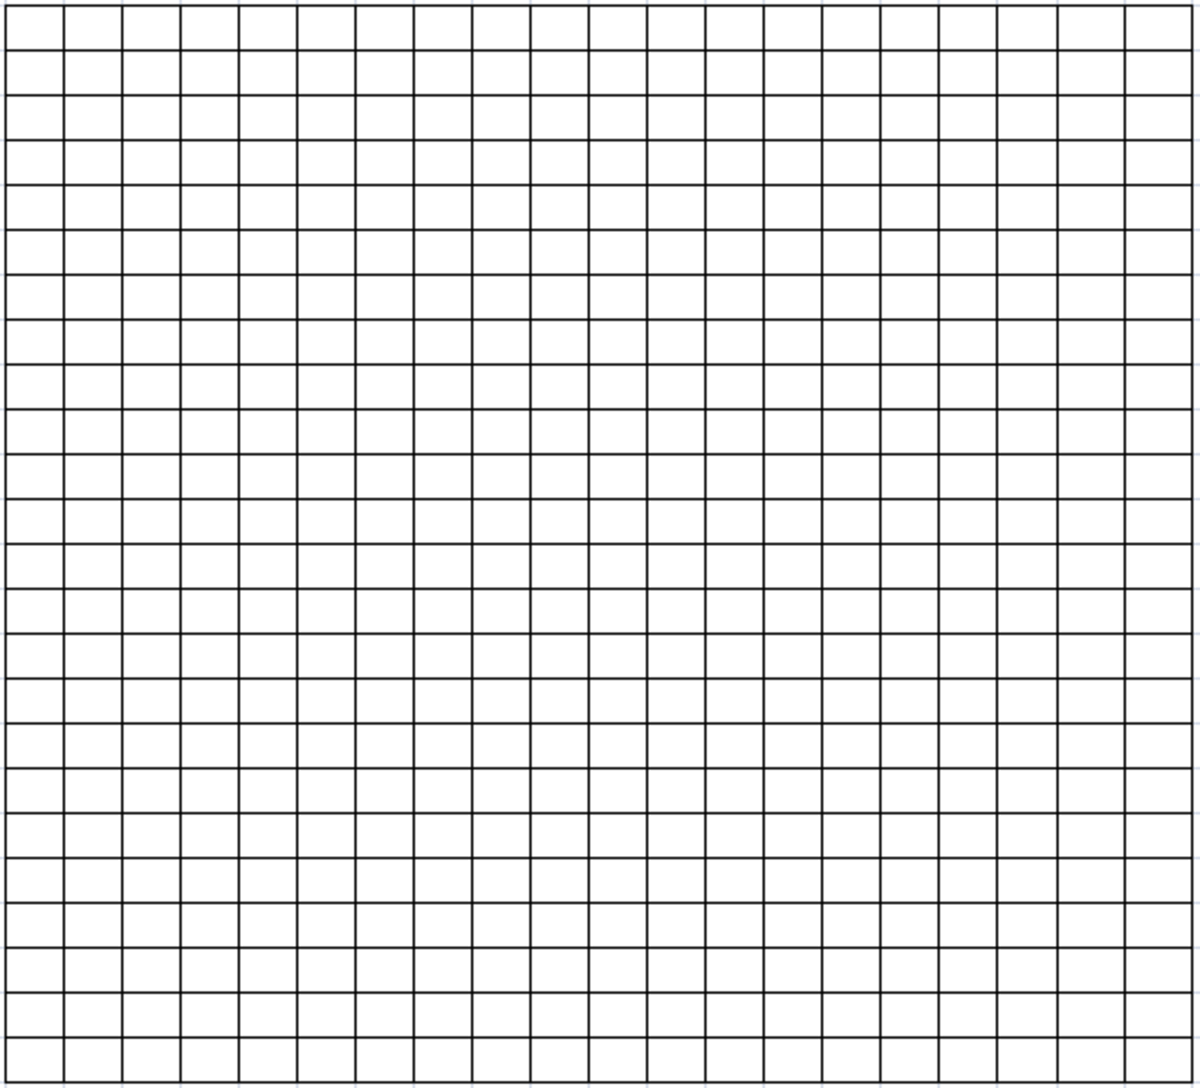 Blank grid for student led word search